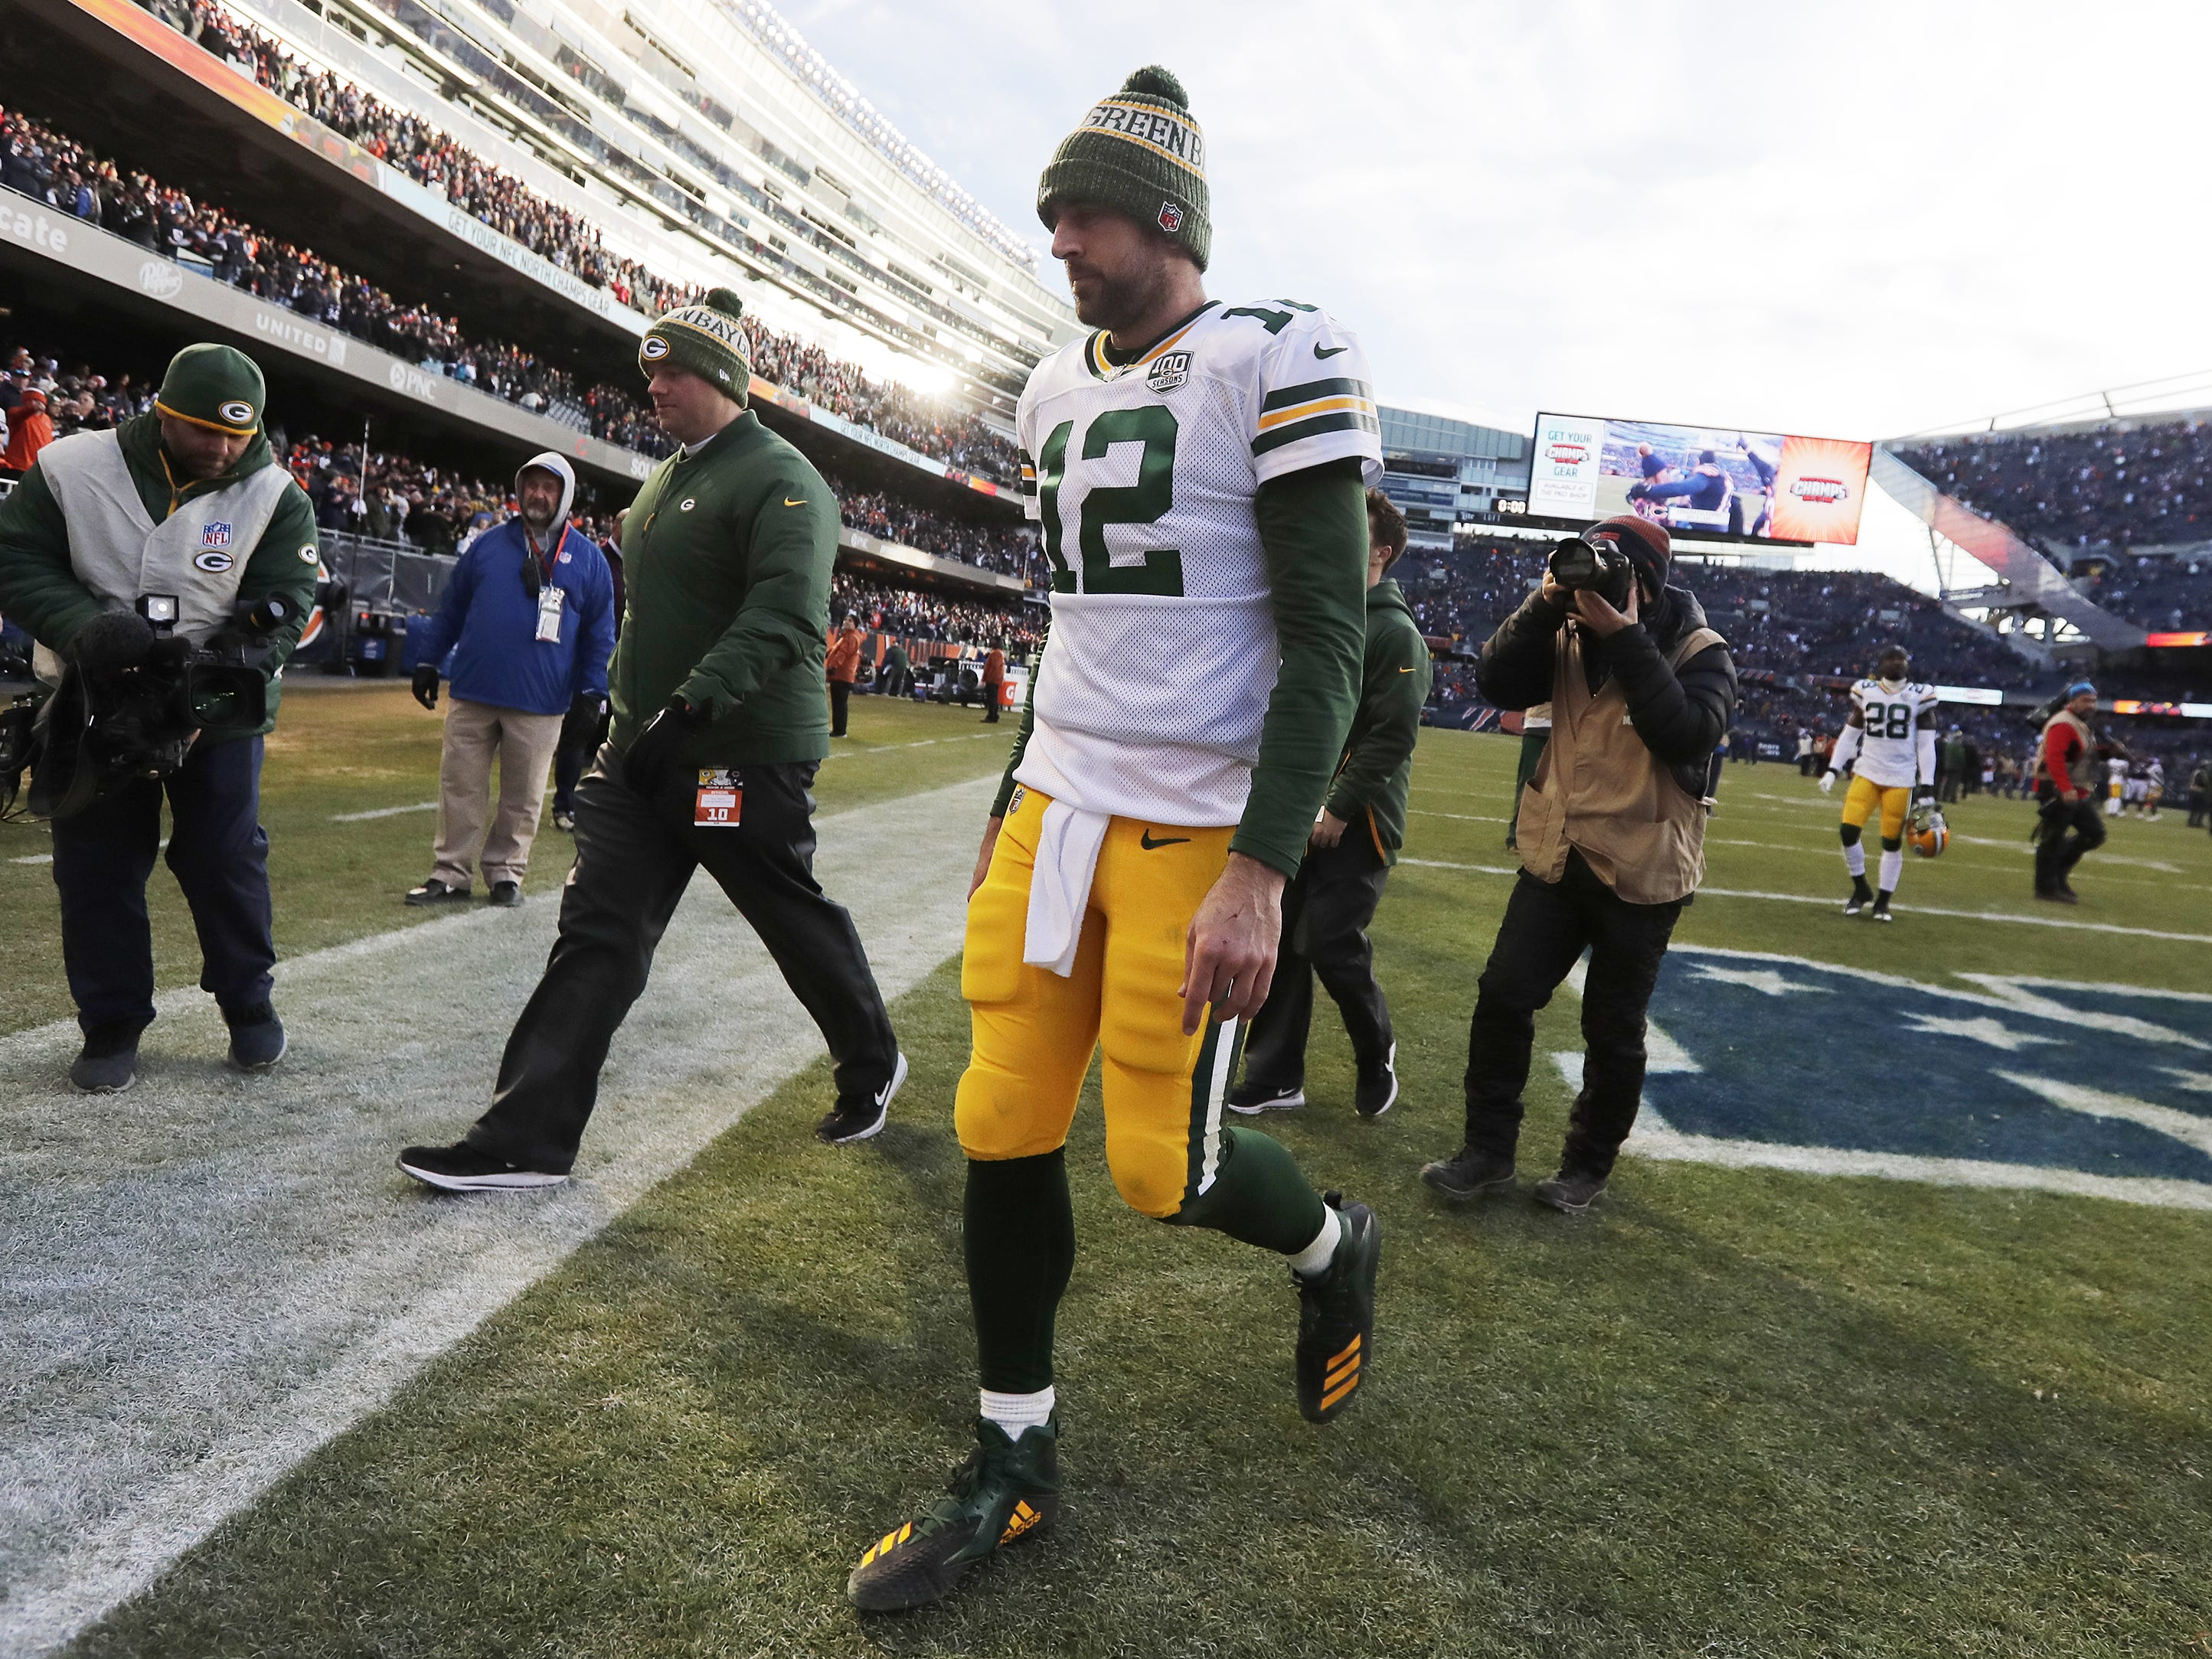 Green Bay Packers quarterback Aaron Rodgers (12) walks off the field after the Chicago Bears beat the Packers at Soldier Field on Sunday, December 16, 2018 in Chicago, Illinois. Adam Wesley/USA TODAY NETWORK-Wis